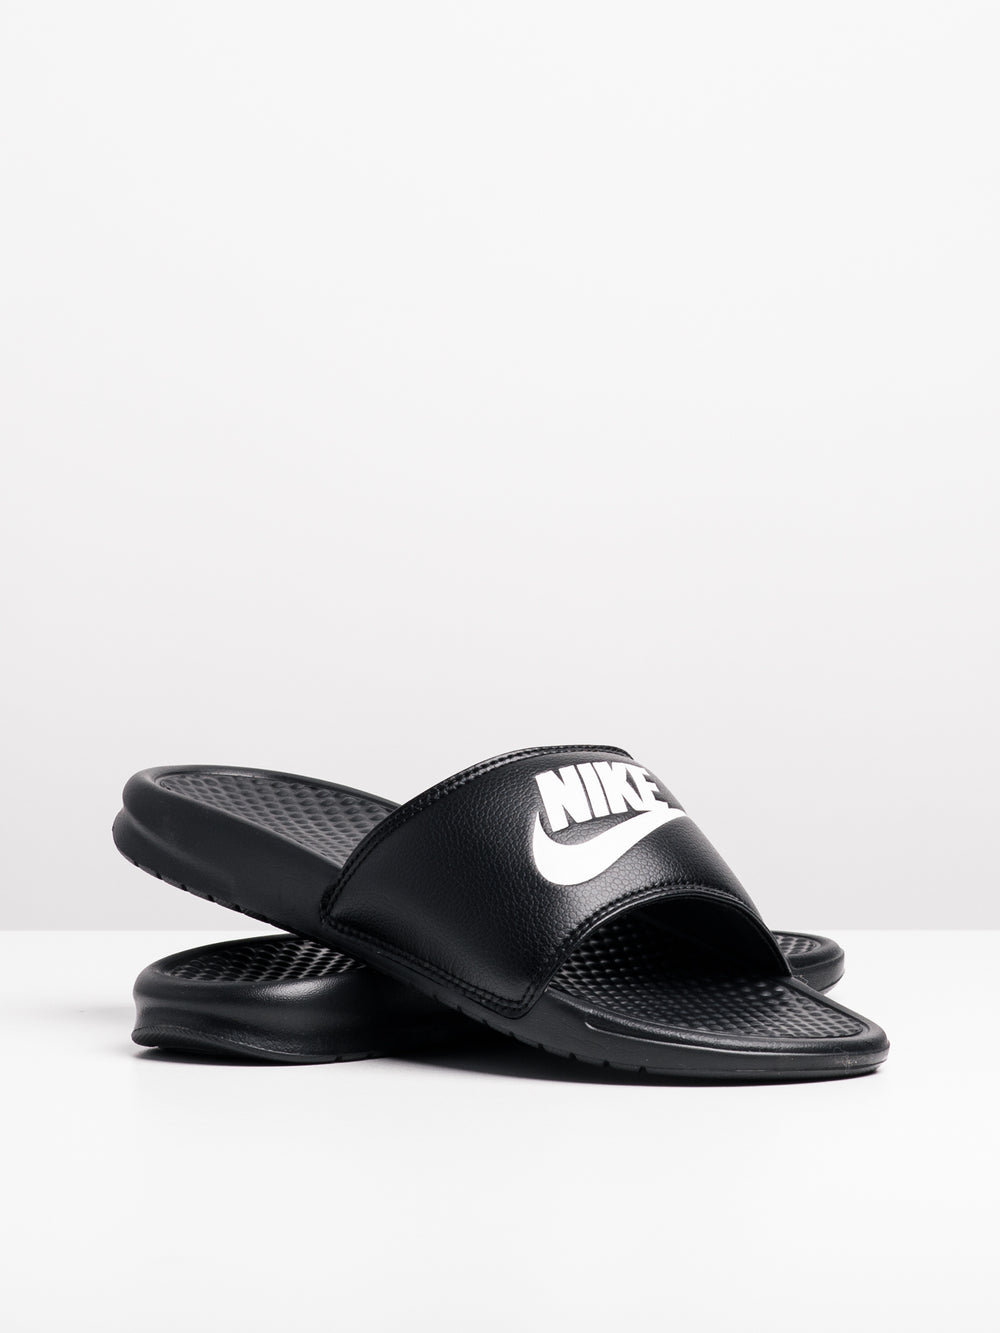 MENS BENASSI JDI BLACK/WHITE SANDALS